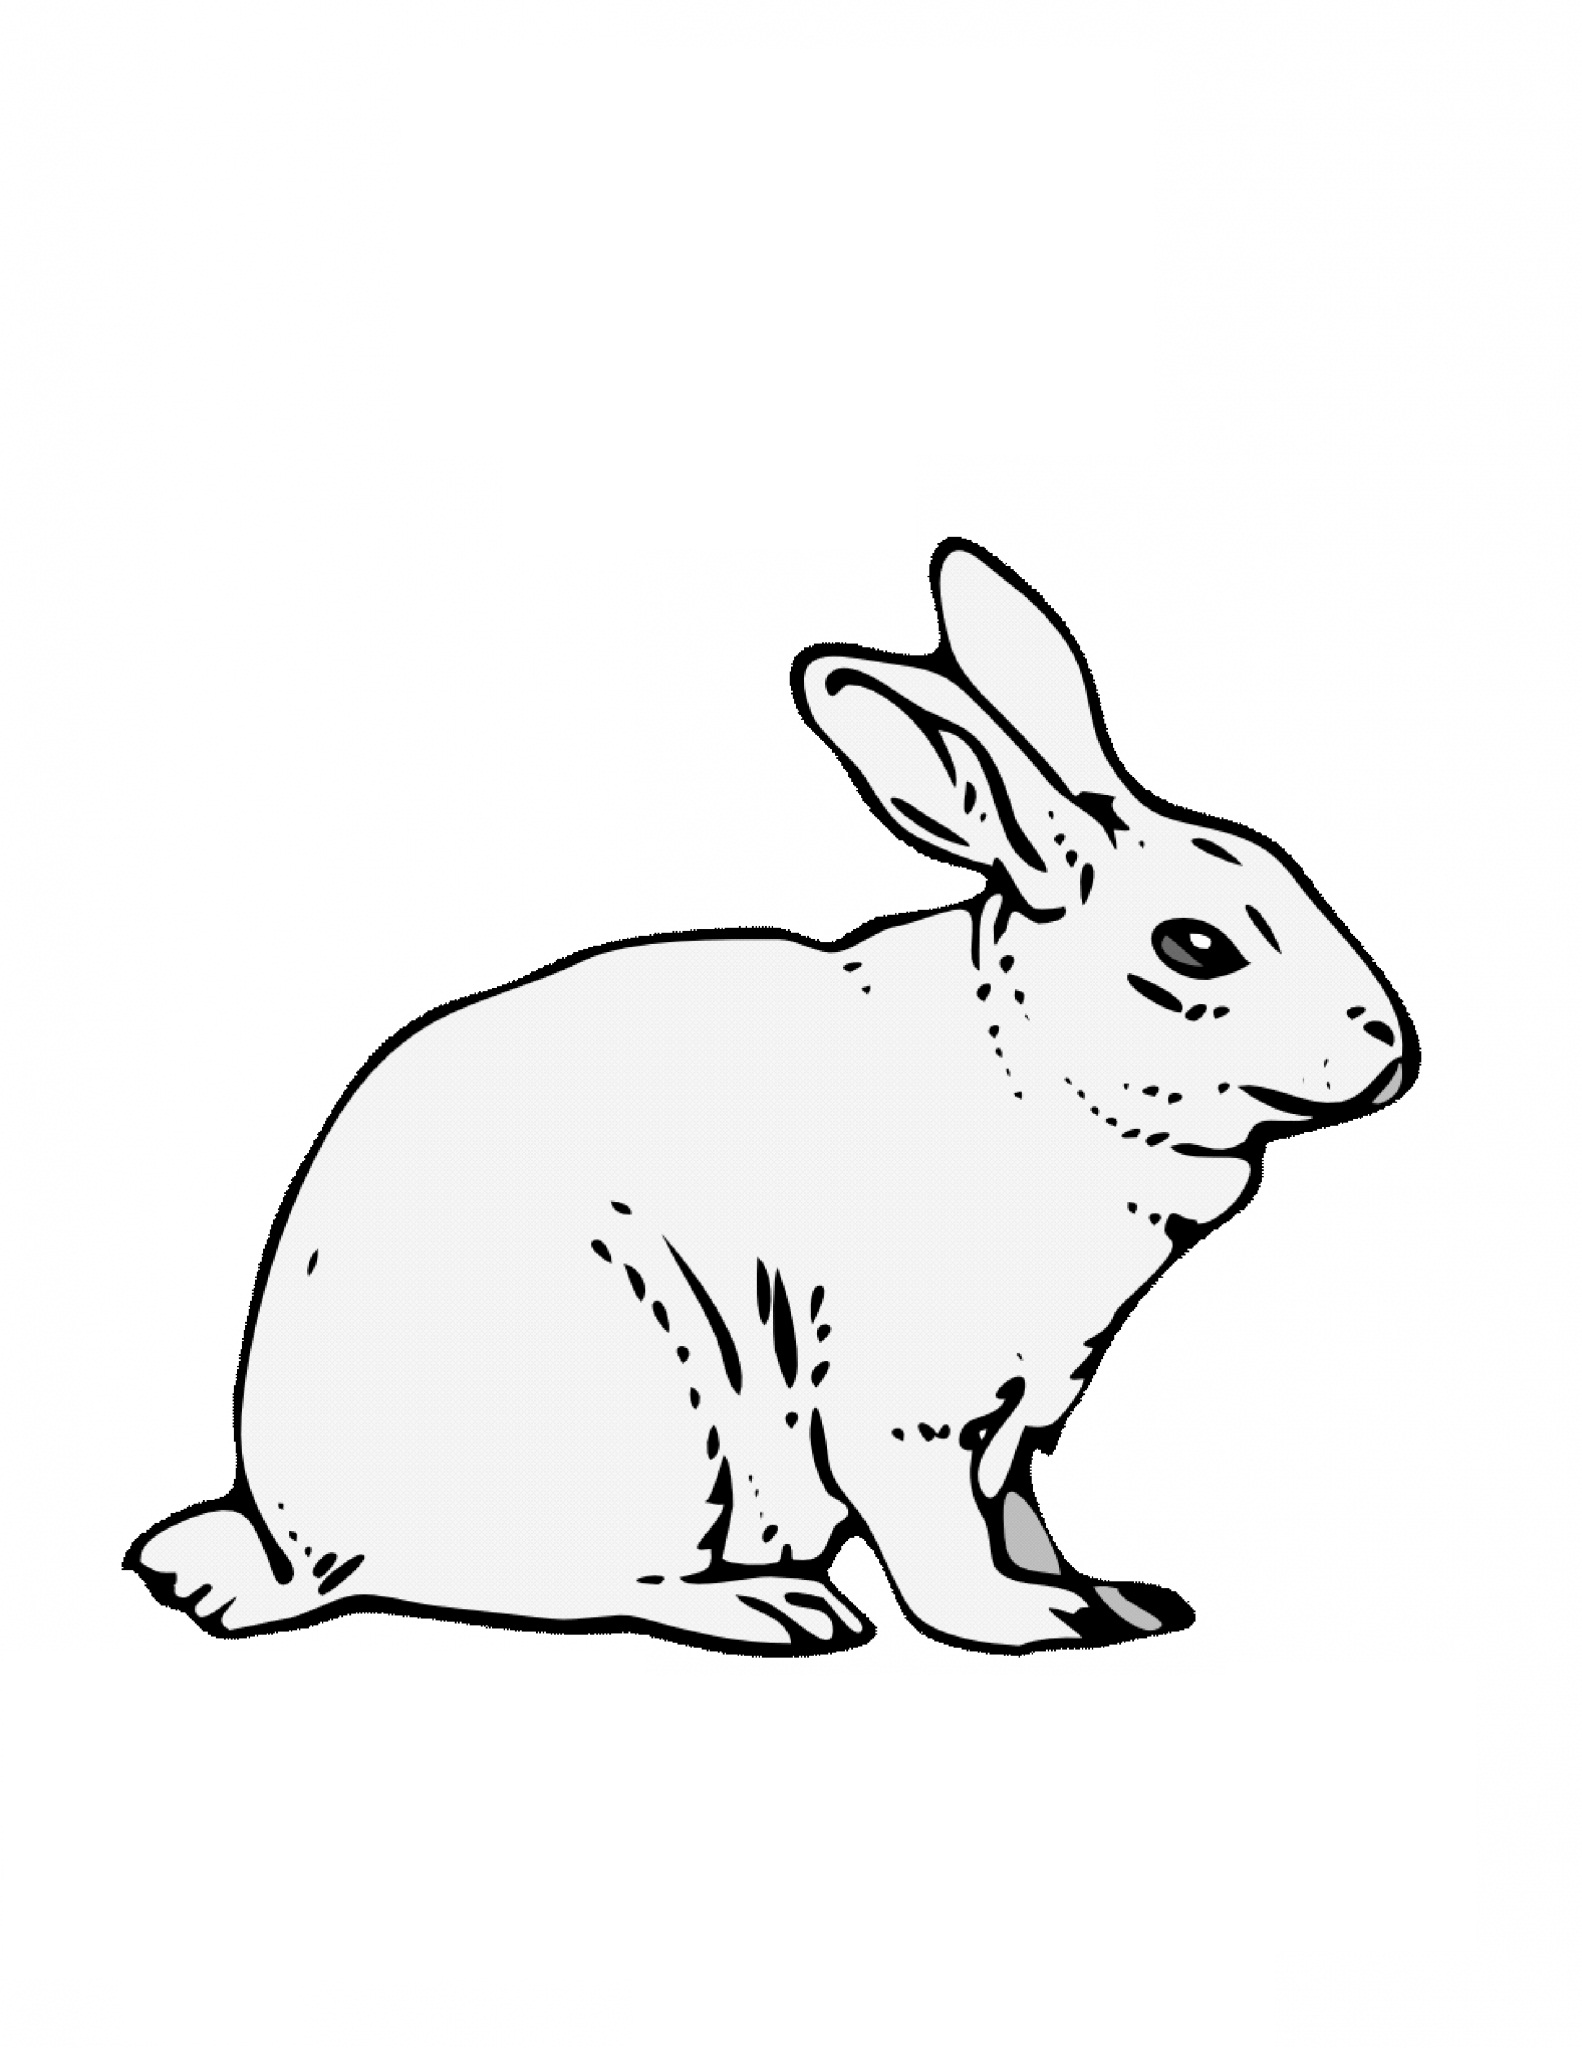 rabbit pictures for kids for colouring bunny coloring pages best coloring pages for kids colouring pictures for kids rabbit for